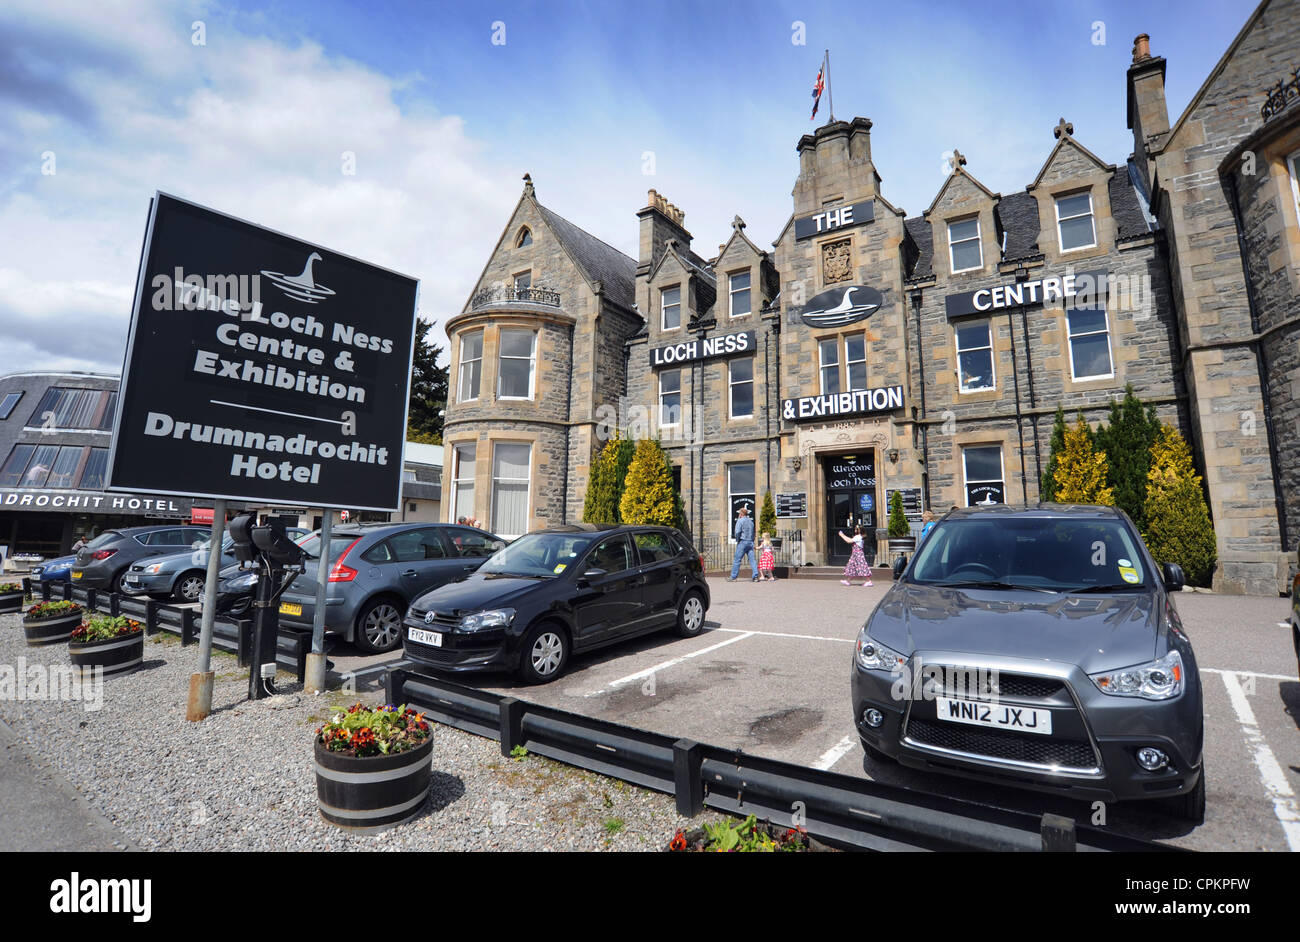 THE LOCH NESS CENTRE AND EXHIBITION AT DRUMNADROCHIT SCOTLAND RE MONSTER SIGHTINGS ETC UK - Stock Image